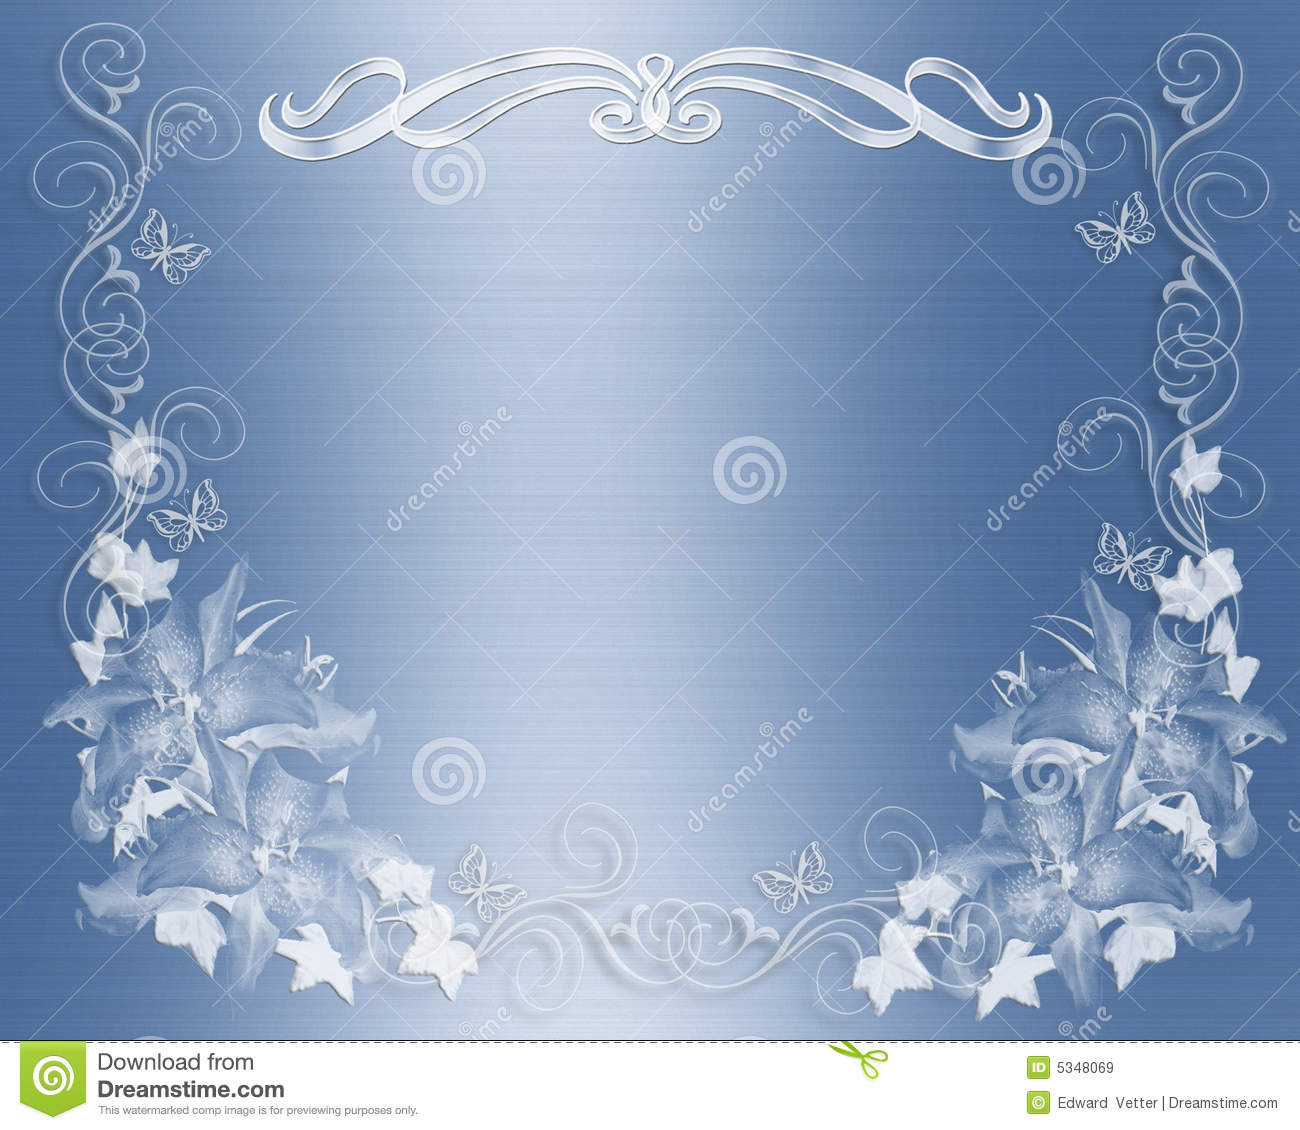 Plain Wedding Invitation Templates was Lovely Template To Make Great Invitation Layout